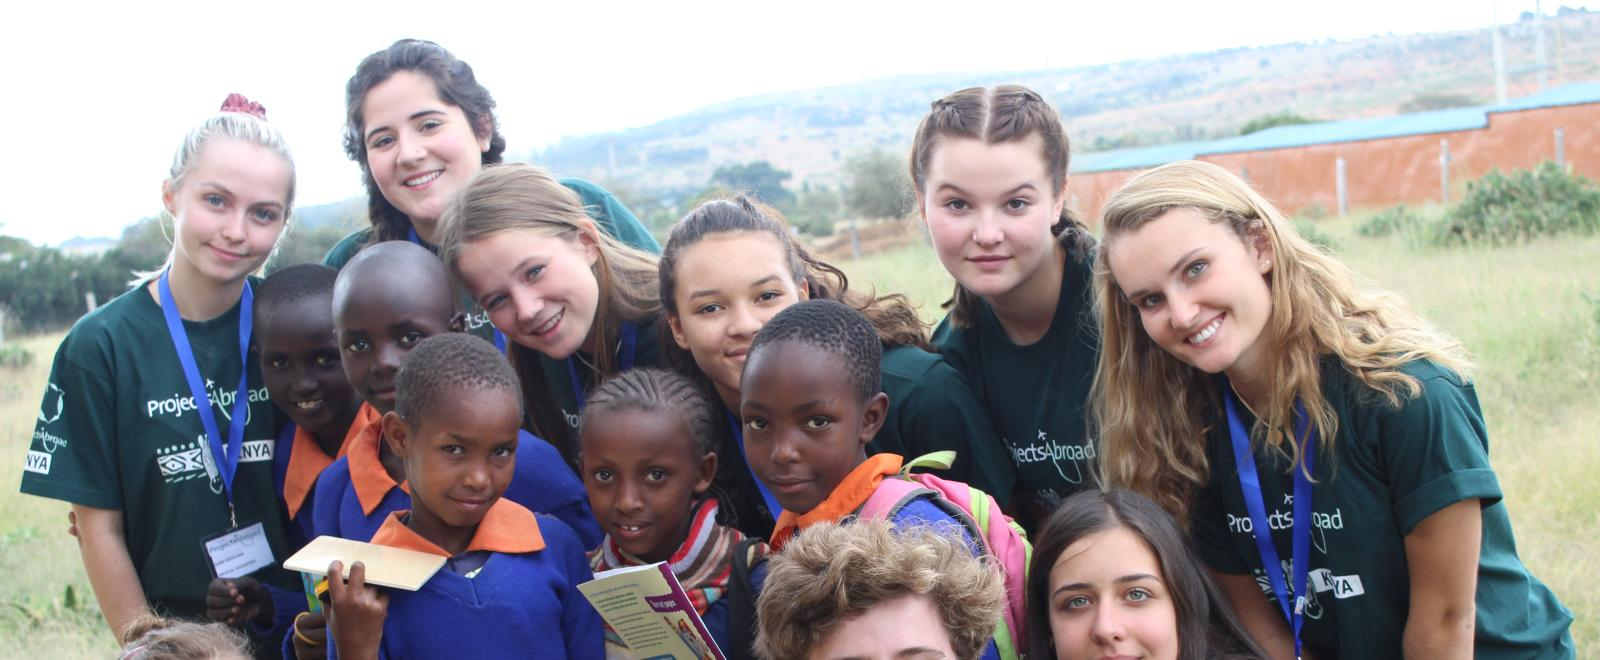 Healthcare volunteers take a group photo with students during a medical outreach in Kenya